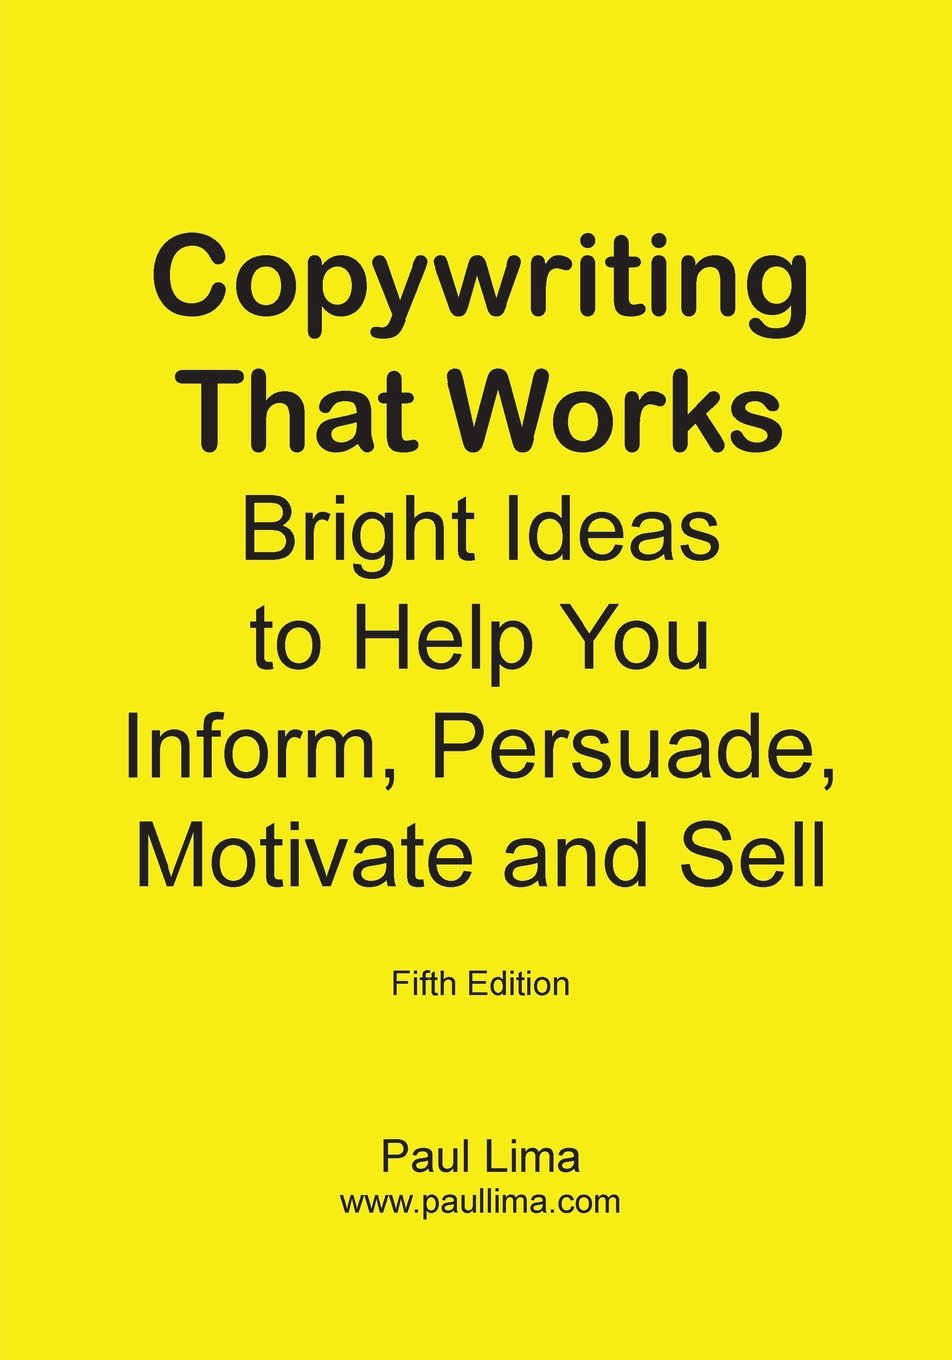 Download Copywriting That Works: Bright Ideas to Help You Inform, Persuade, Motivate and Sell! PDF